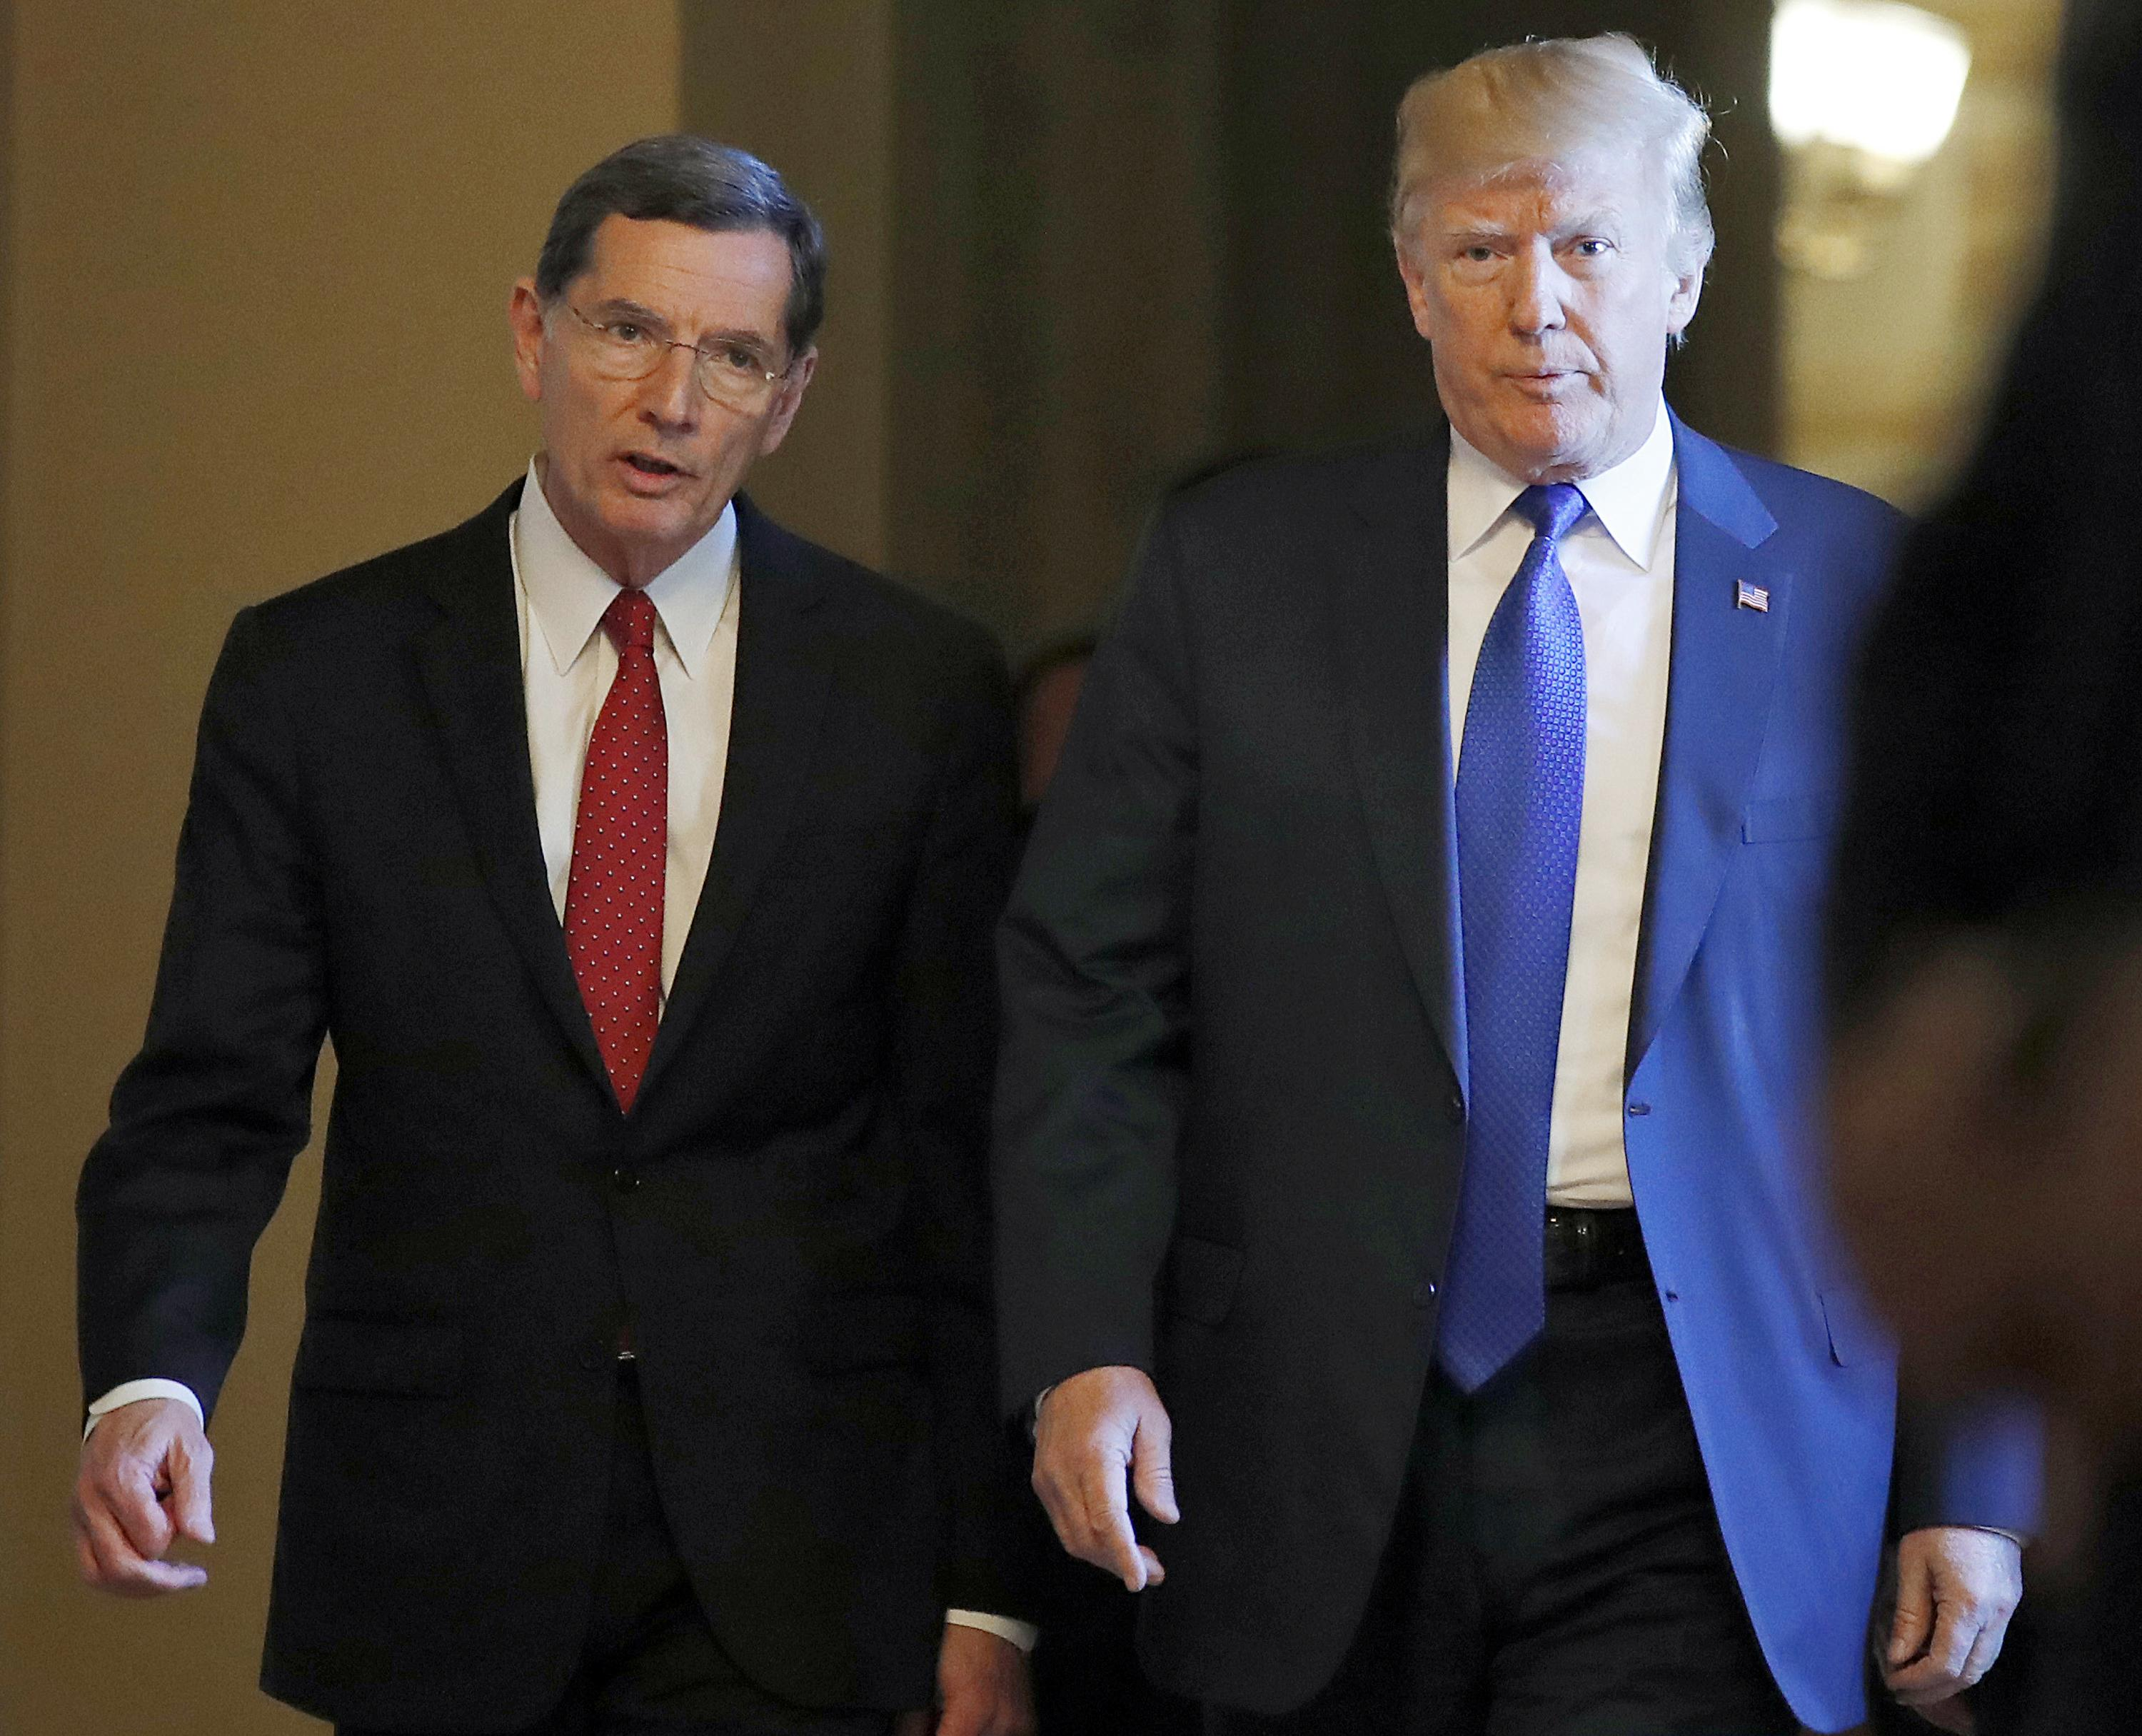 Sen. Barrasso: Iran not done with nuclear weapons